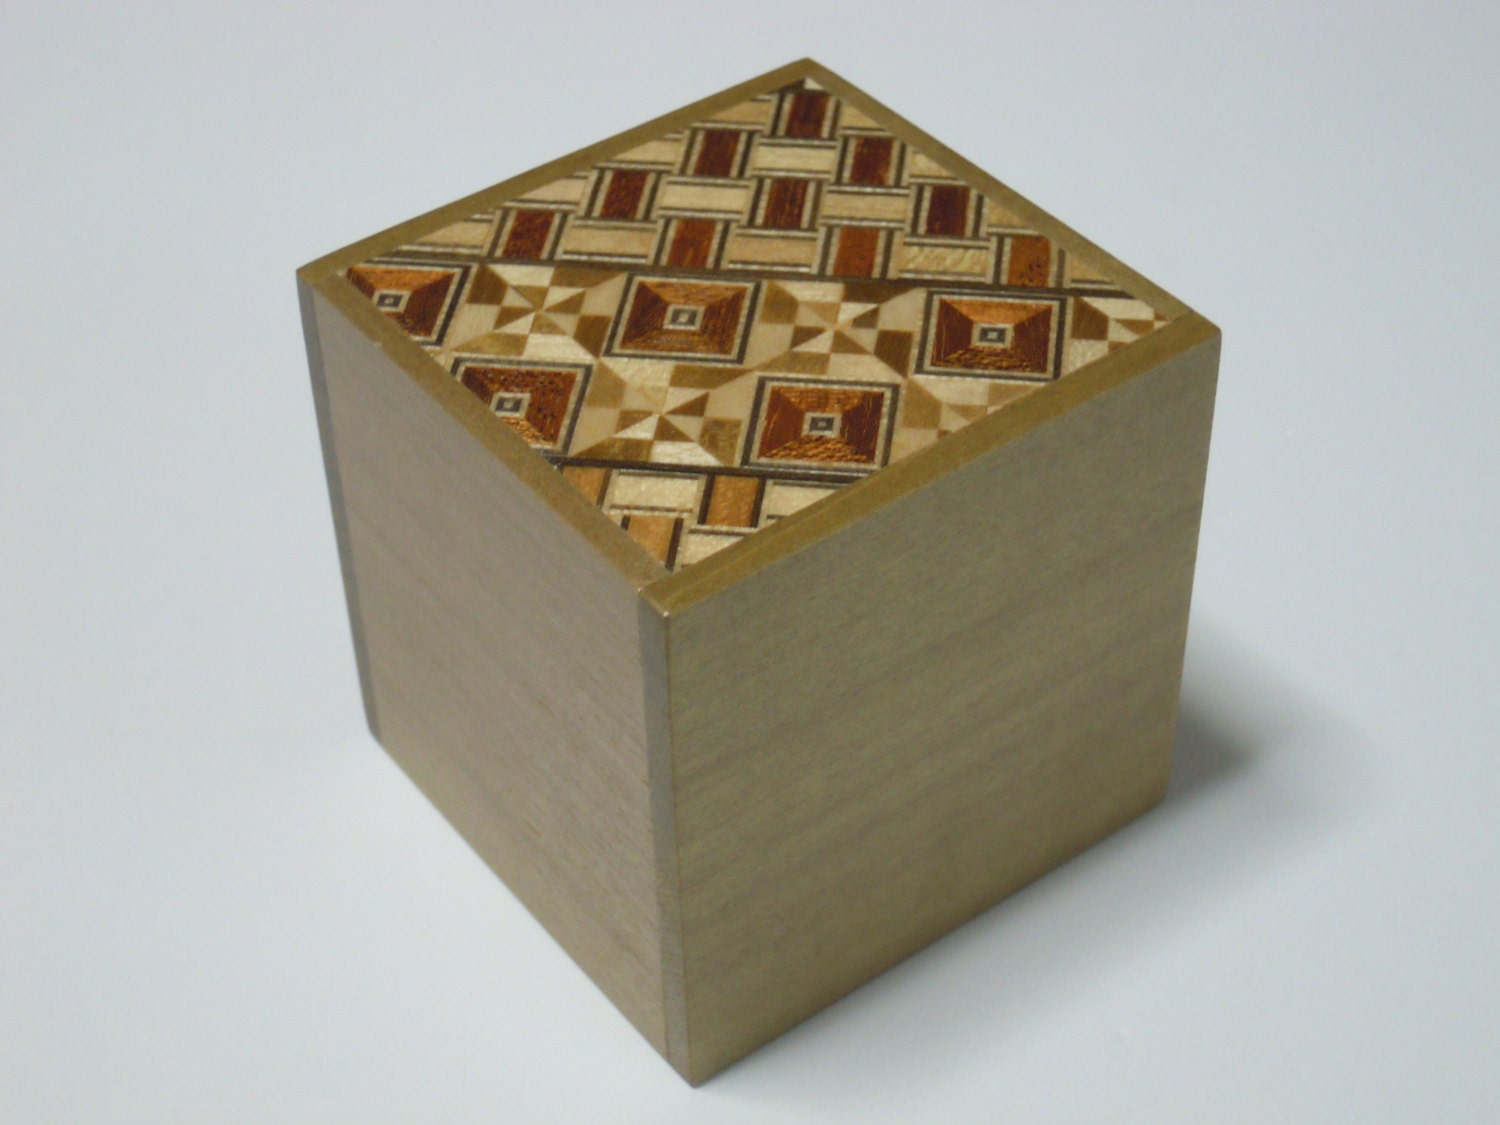 how to open a japanese puzzle box